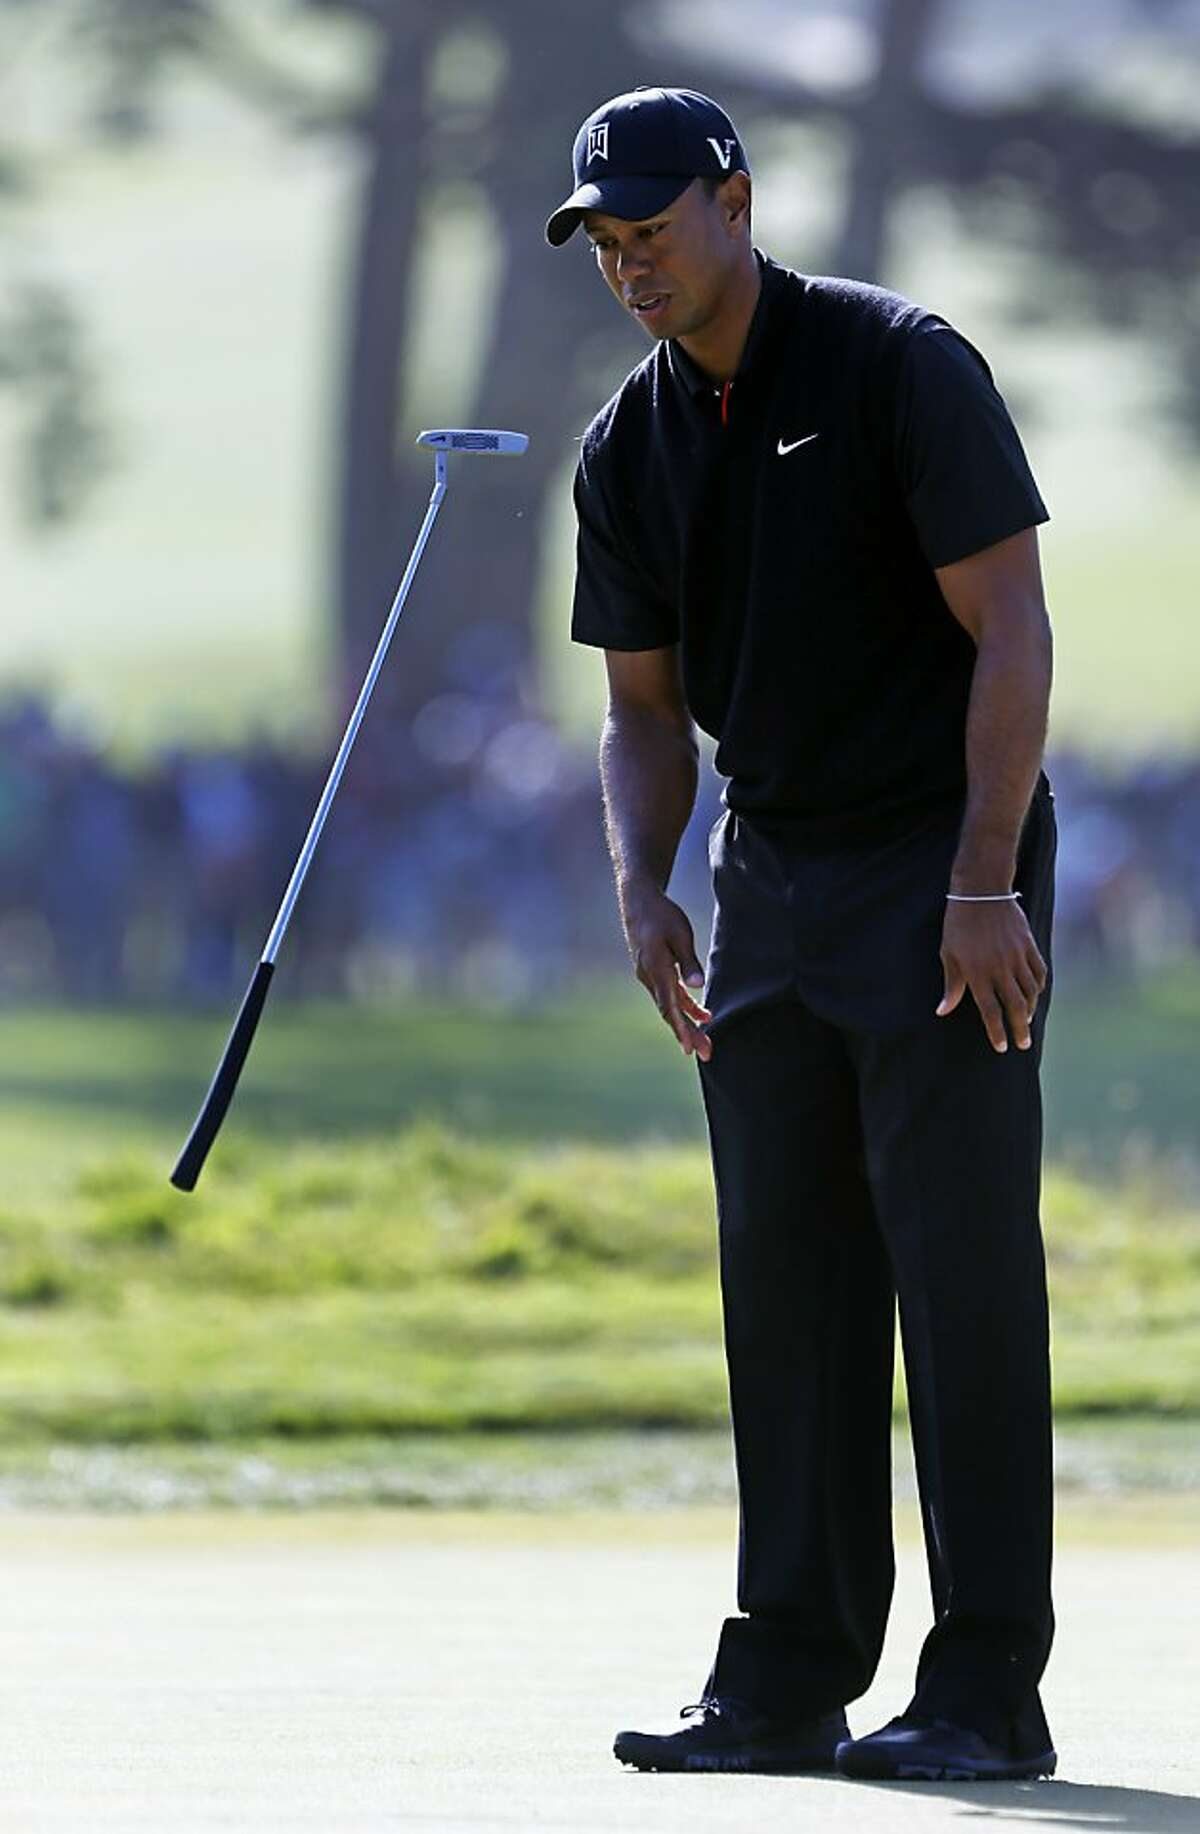 Tiger Woods flips his putter after missing a birdie shot on the 16th green during the second round of the 112th U.S. Open at The Olympic Club on Friday June 15, 2012 in Daly City, California.